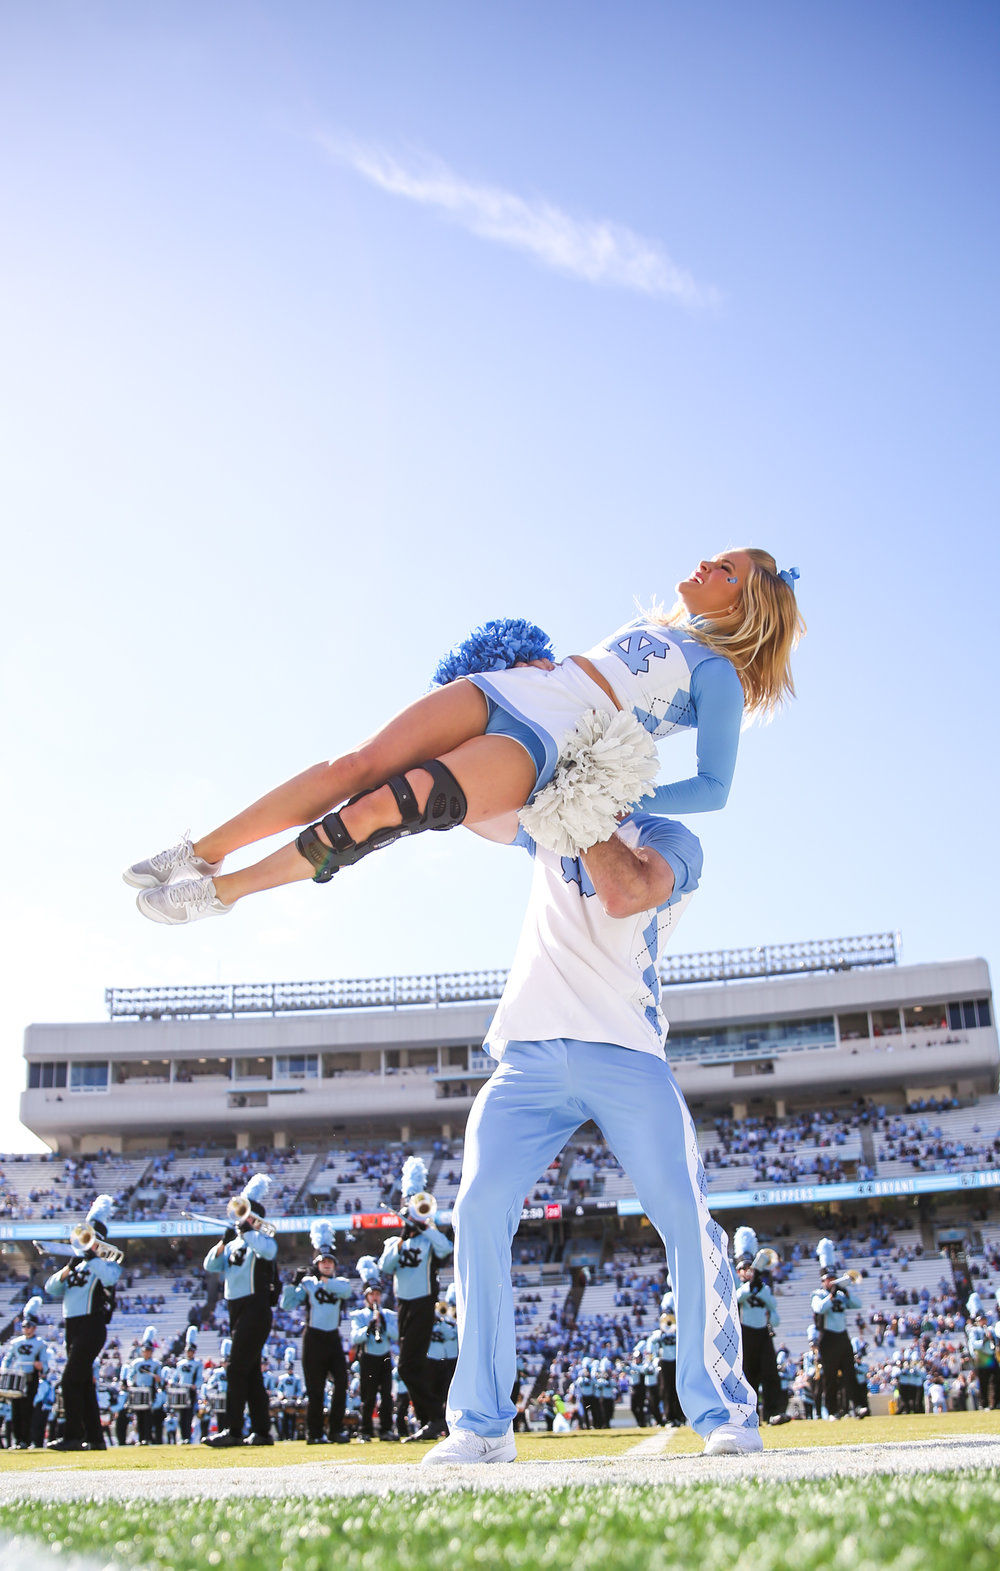 UNC cheerleading team performe before the game. Miami defeated UNC 24-19 at Kenan Stadium on UNC campus on Sat. Oct.28, 2017.